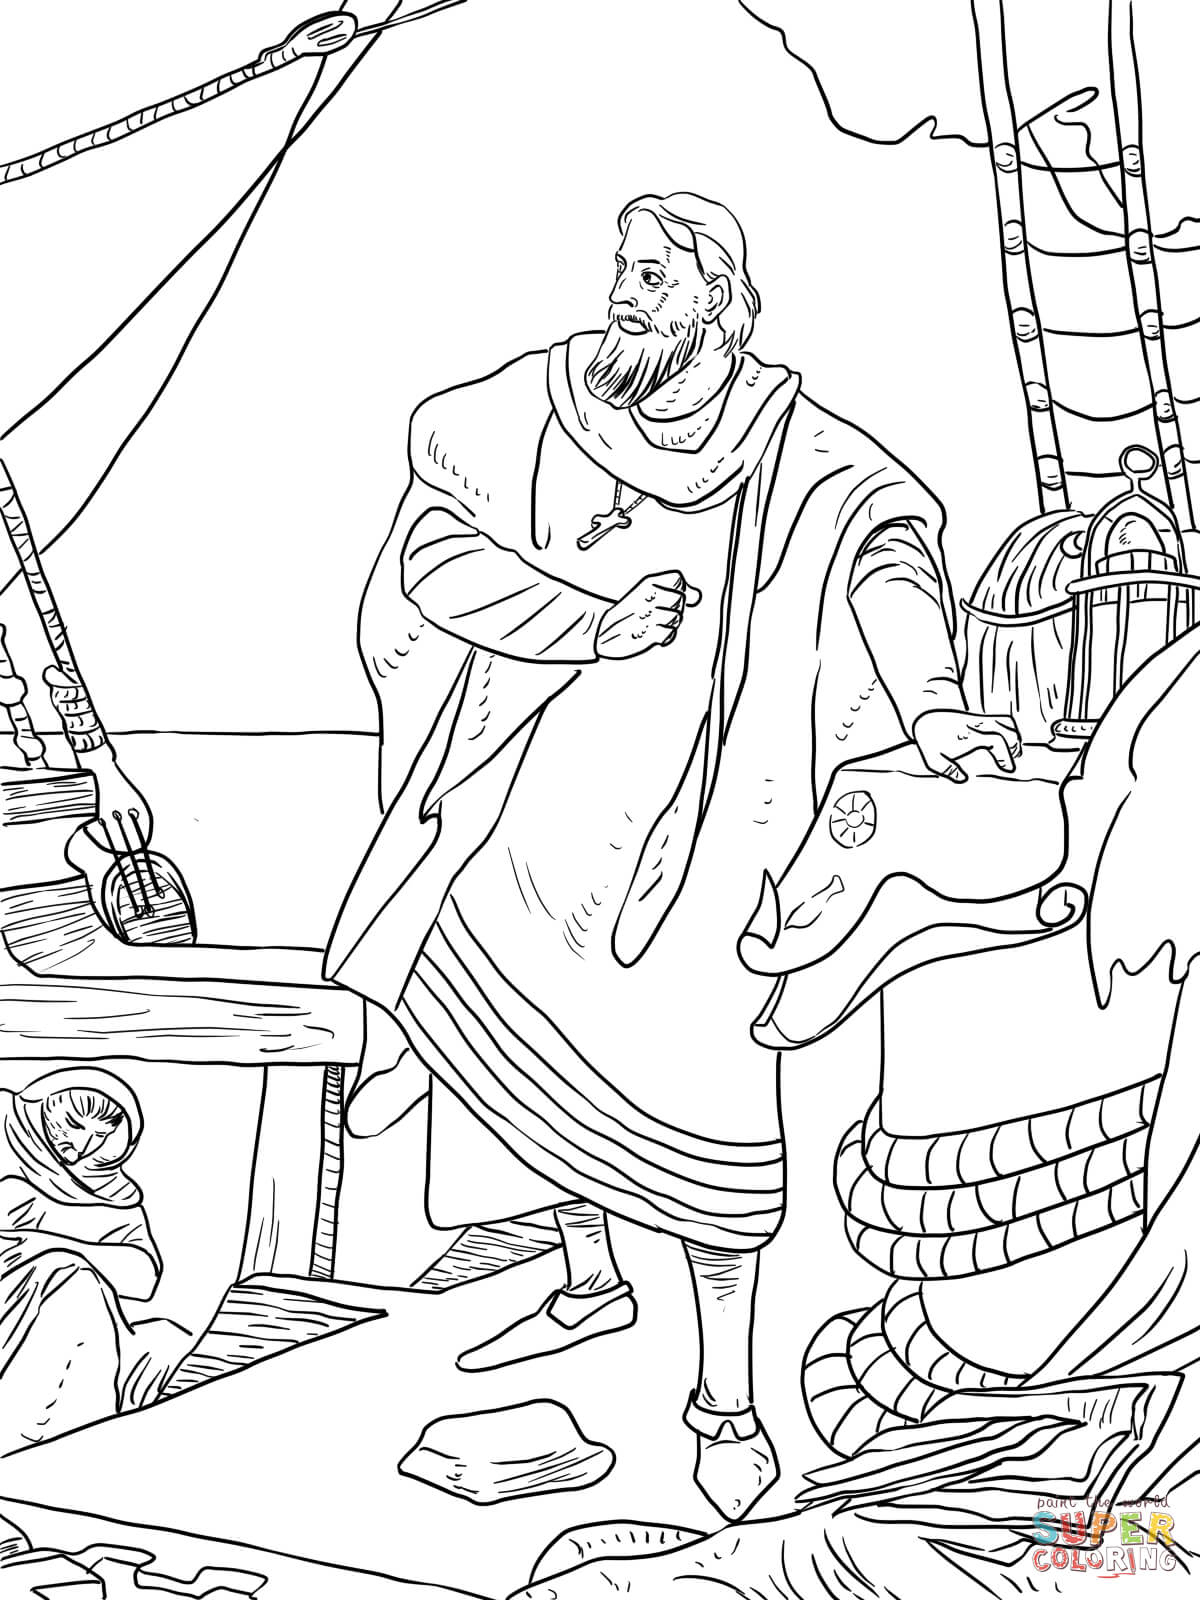 Christopher Columbus On The Santa Maria Coloring Page   Free - Free Printable Christopher Columbus Coloring Pages